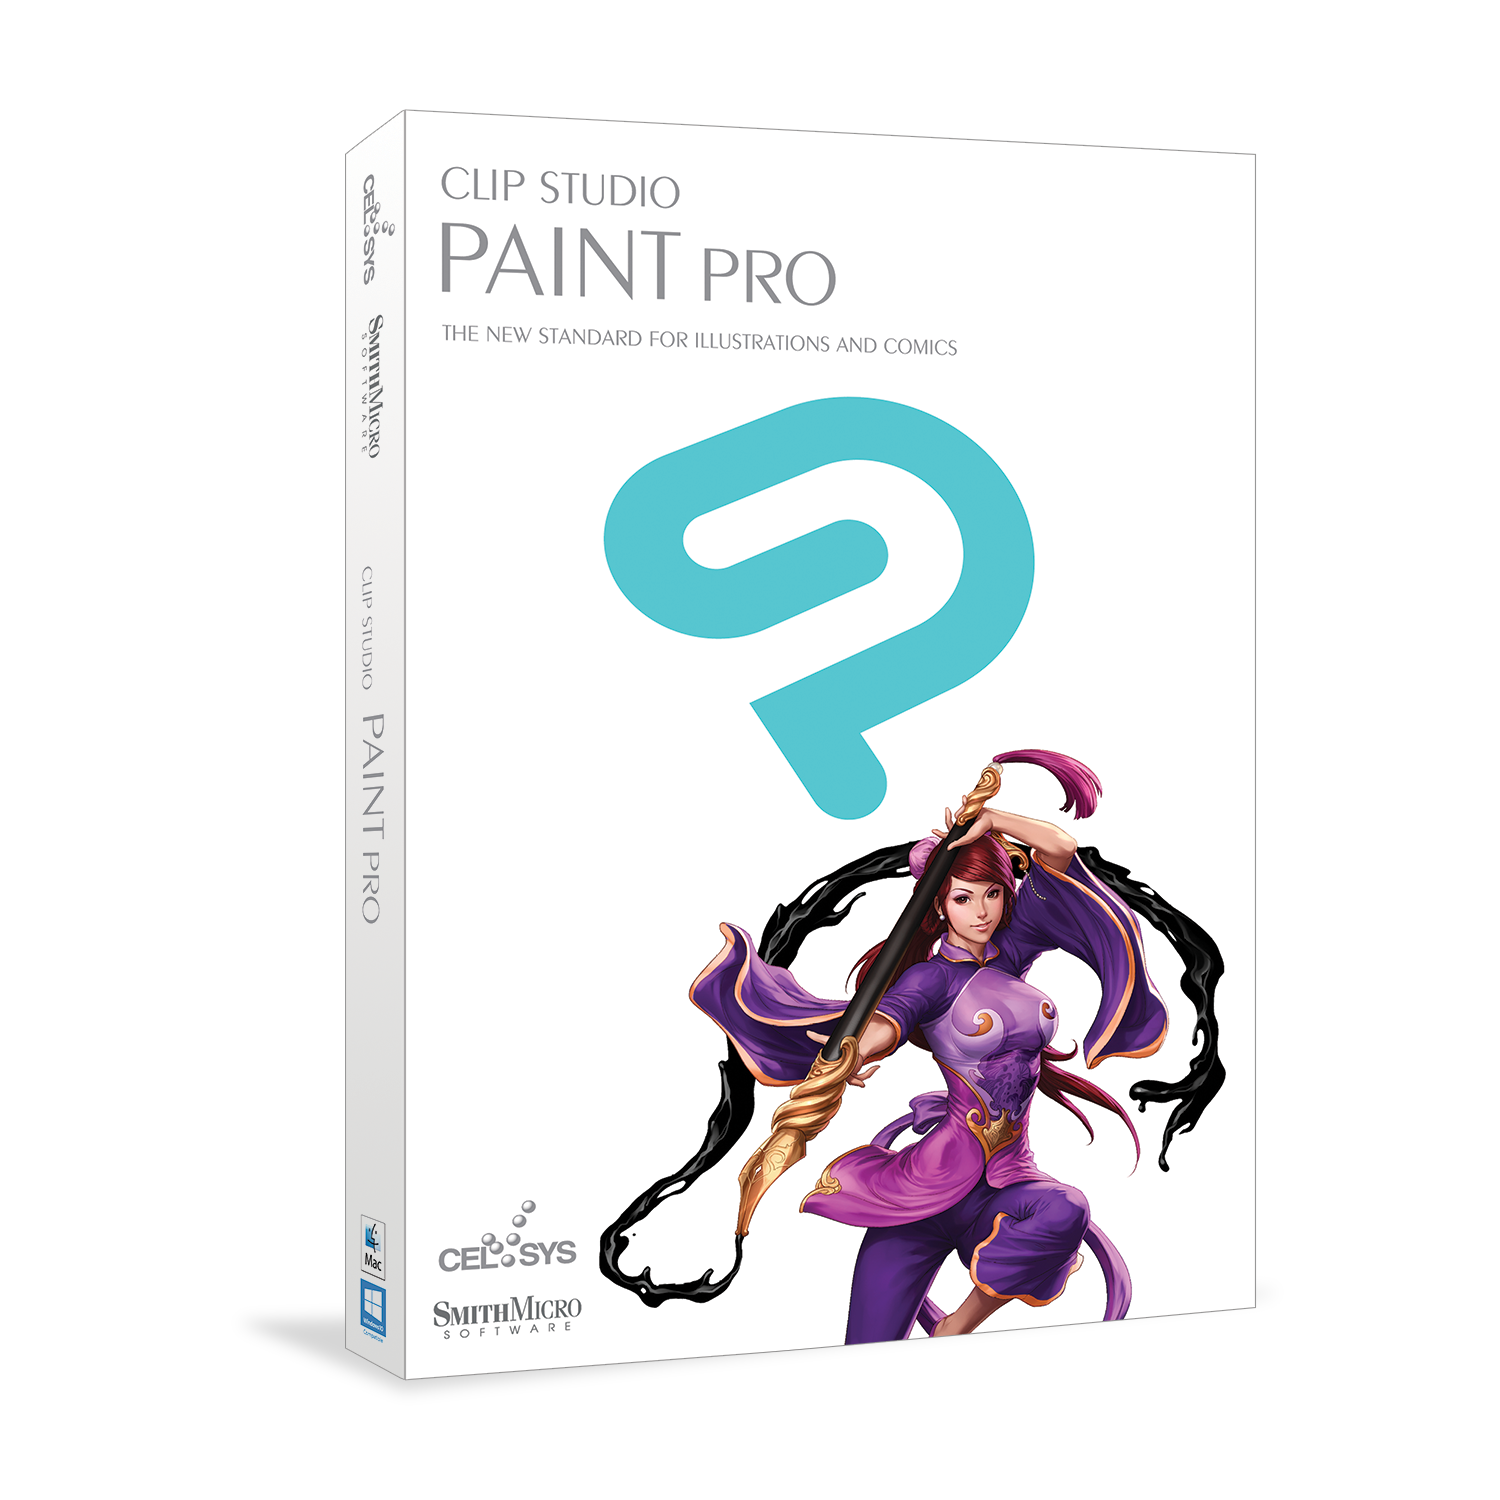 clip-studio-paint-pro-download-2